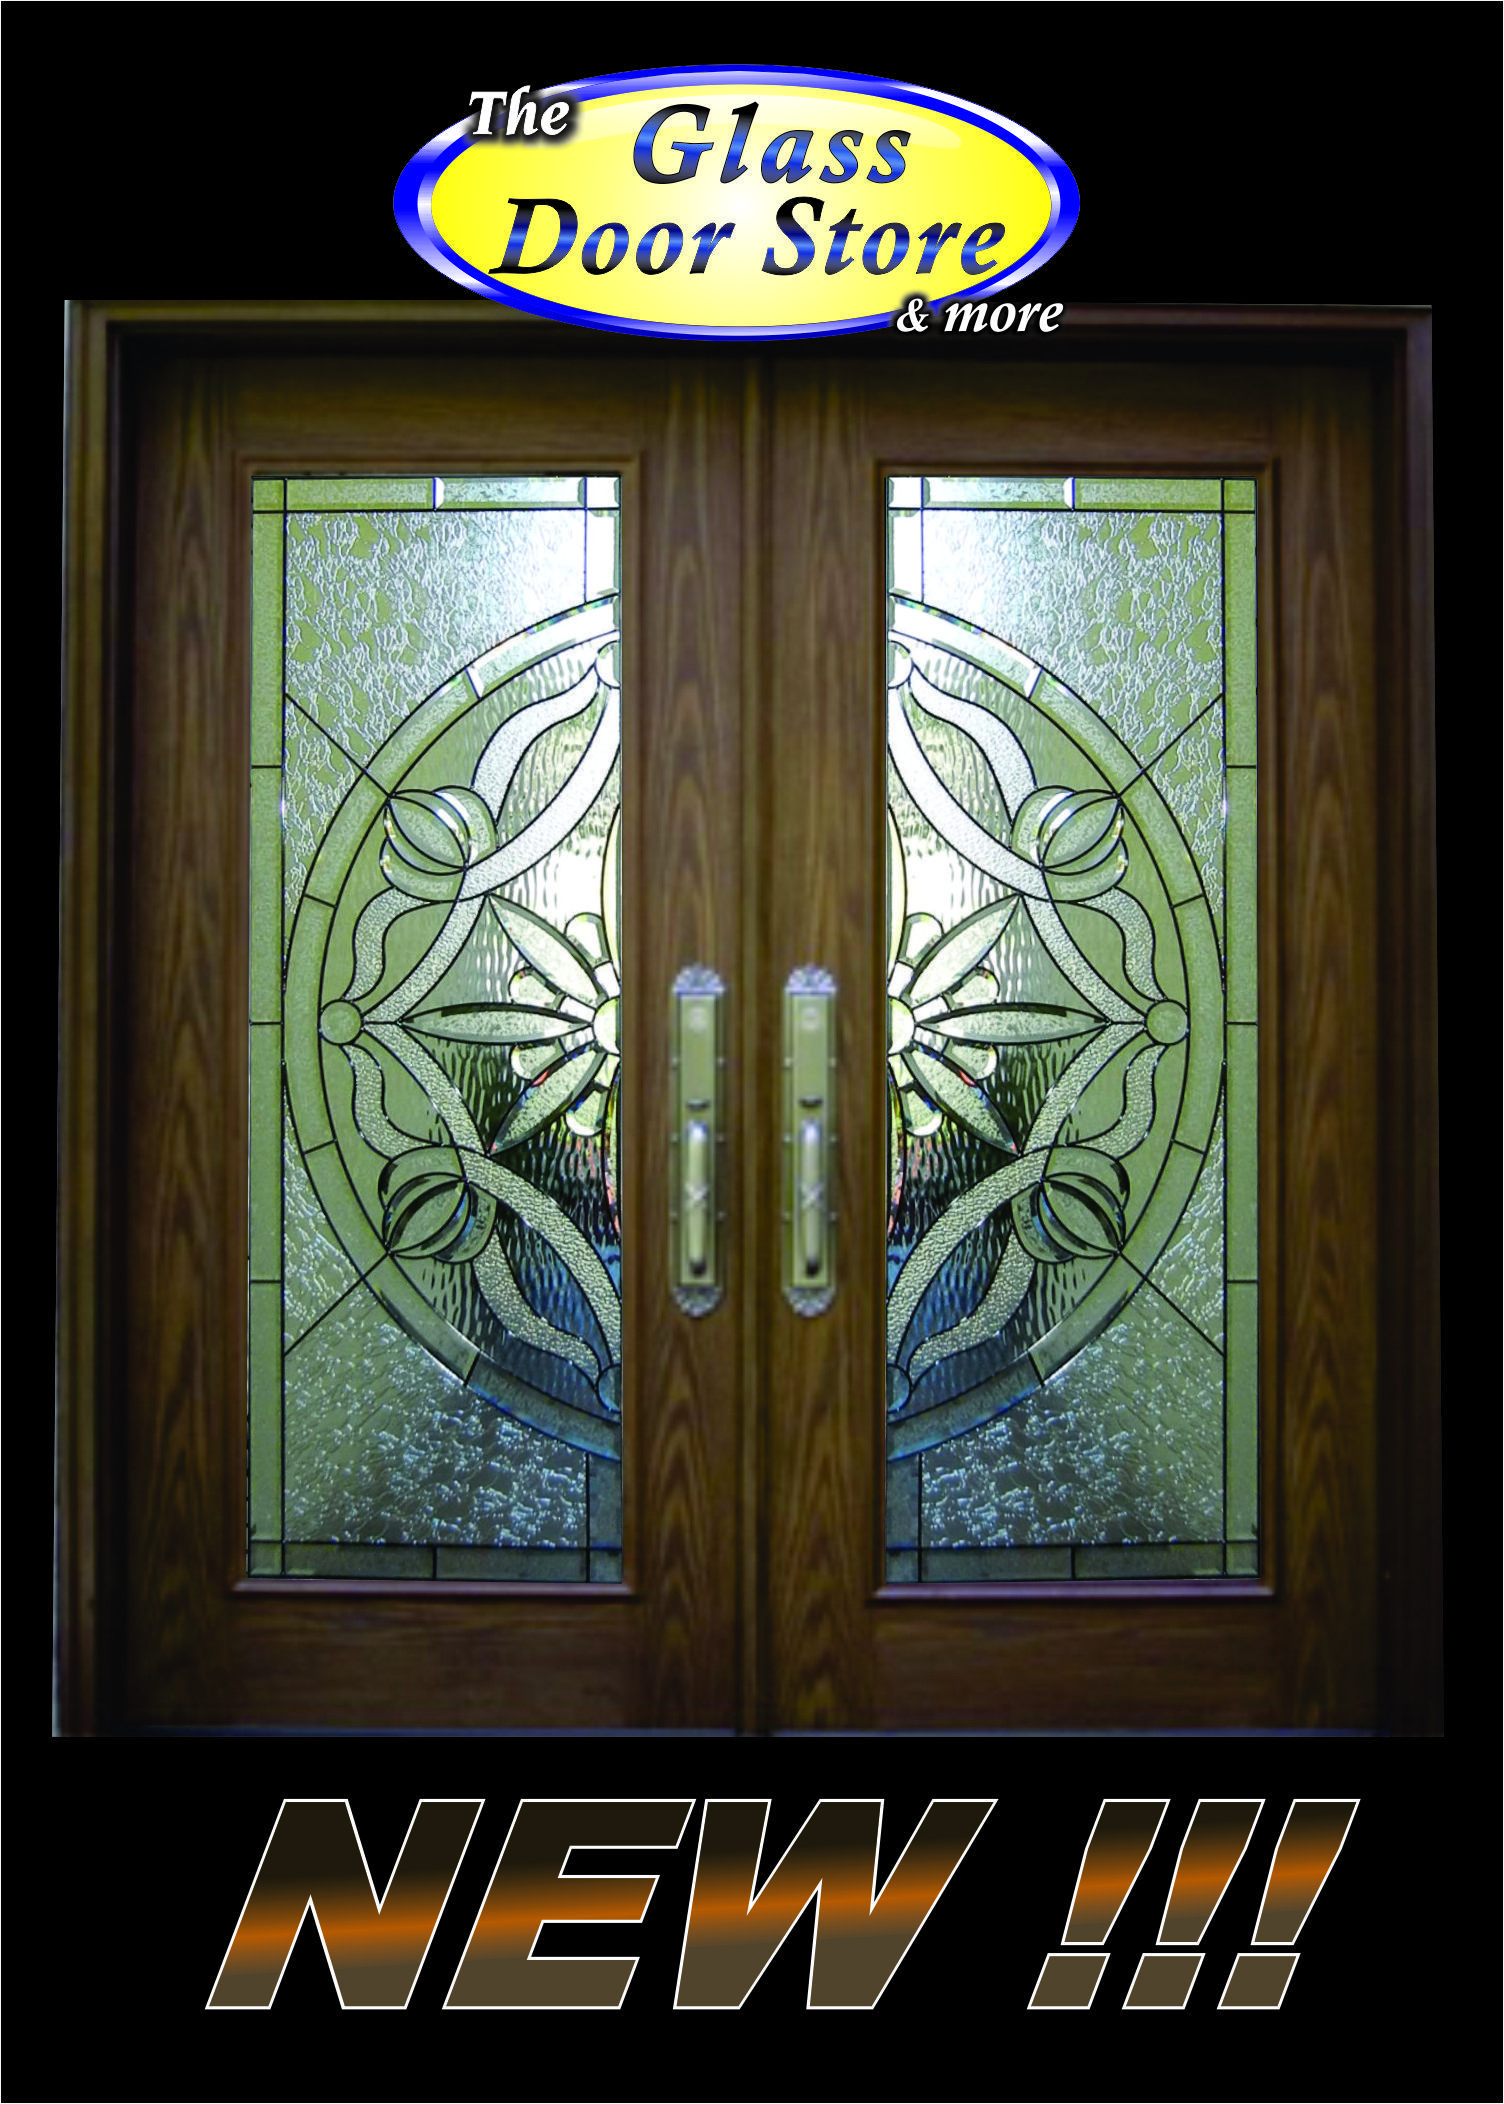 Www Theglassdoorstore Com Classic Design With A Lot Of Bevels And Several Different Glass Textures Set Off The Glass Door Double Front Entry Doors Store Door